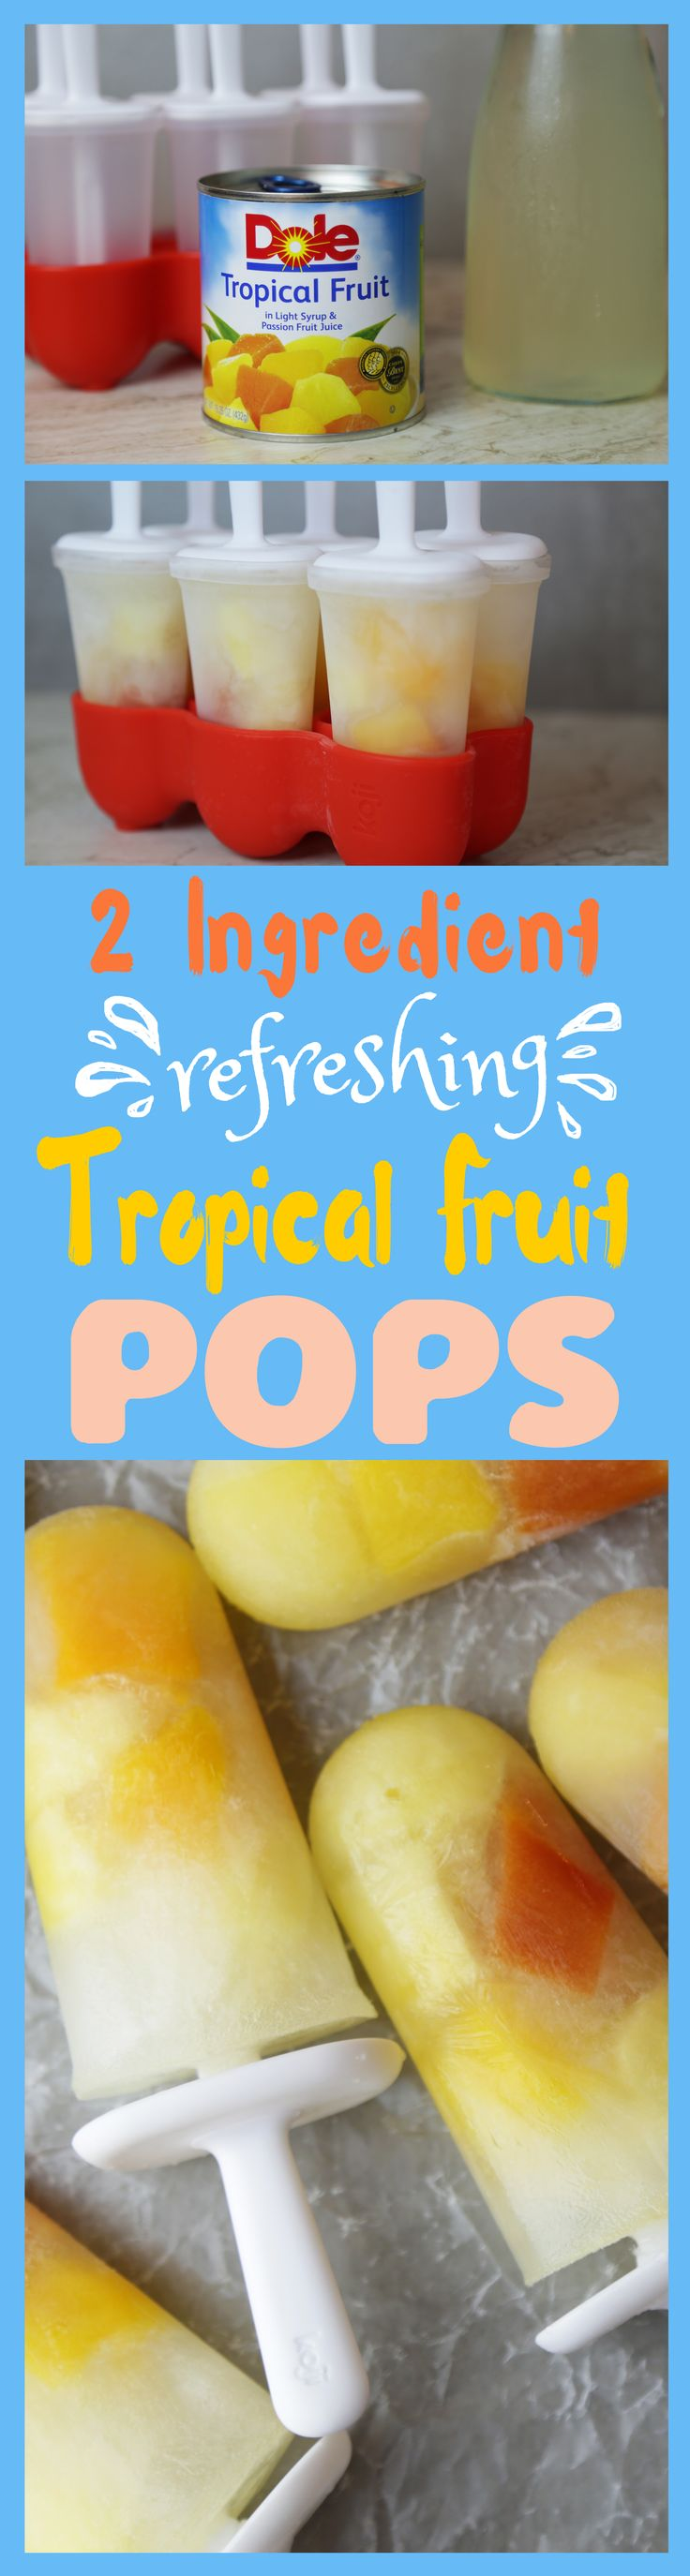 Fruit pop crush game - These Dole Canned Tropical Fruit Popsicles Could Not Be Easier To Make Just Add